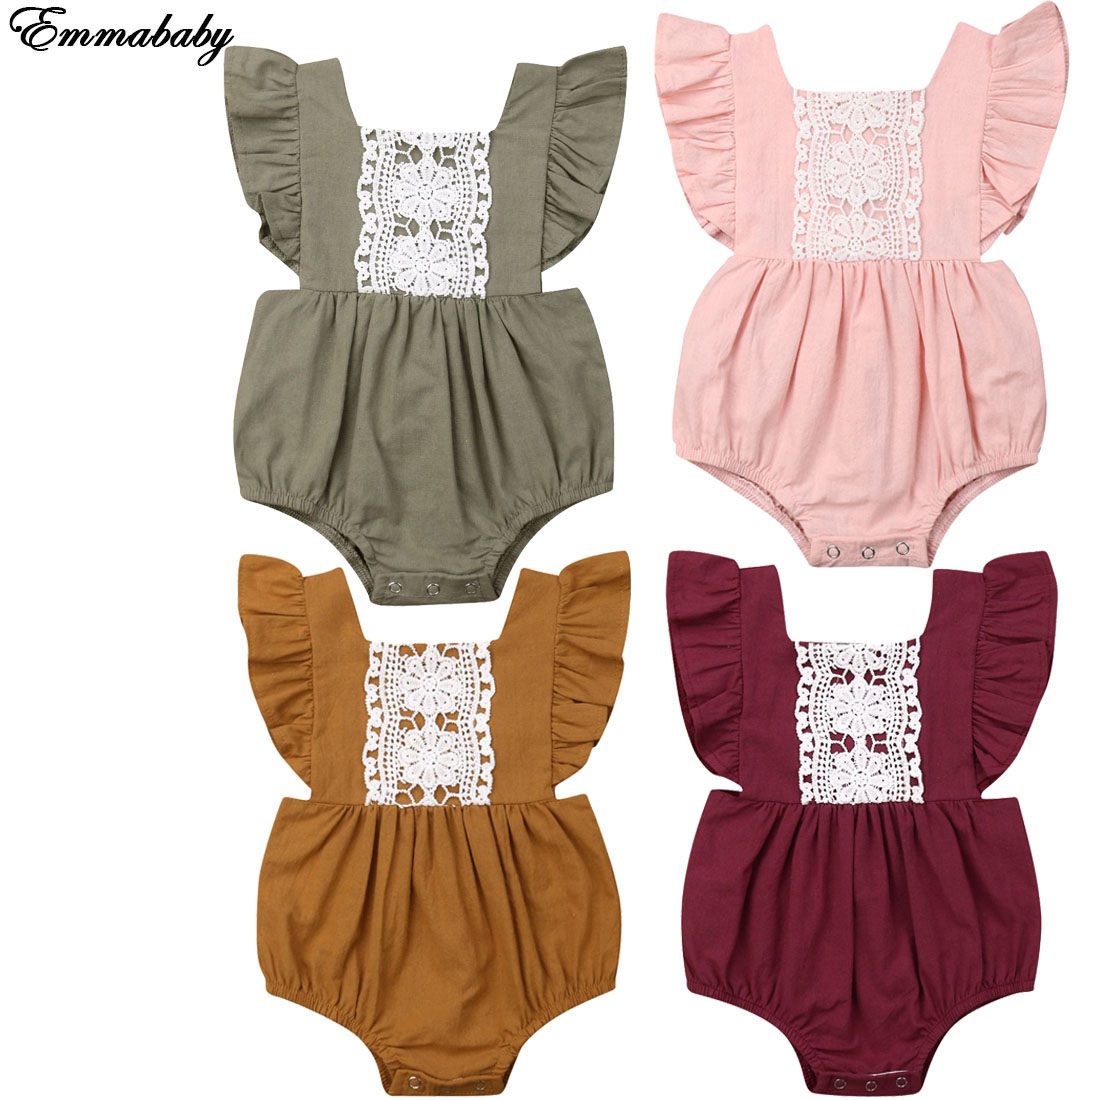 NEW 2020 Newborn Toddler Kids Baby Girl Clothes Sister Matching Lace Sleeves Romper Outfits Set